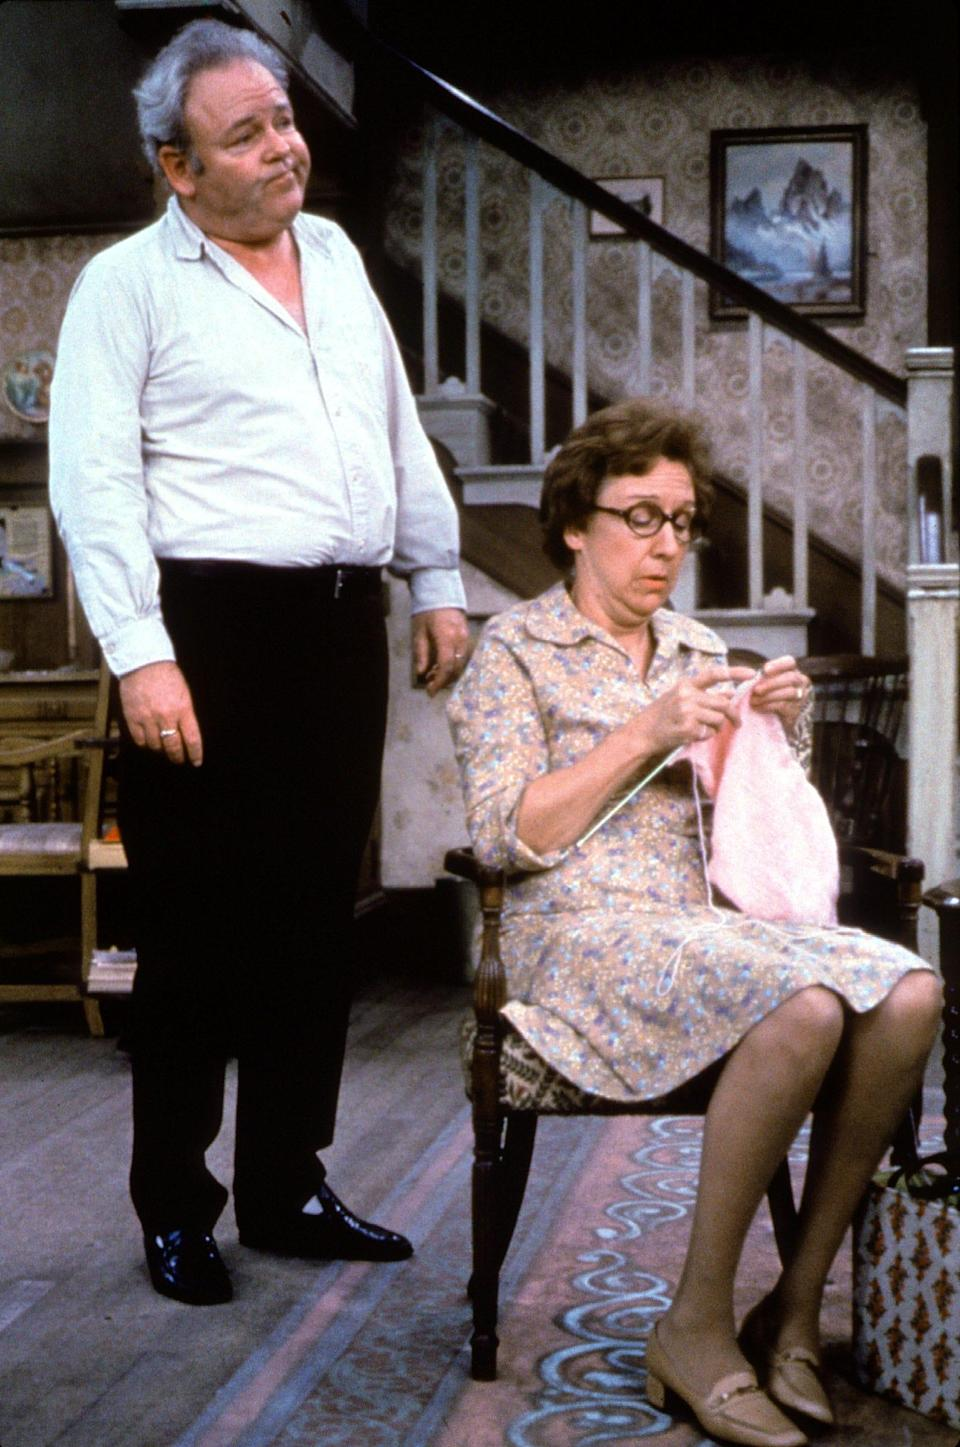 """Archie Bunker (Carroll O'Connor), left, and his wife Edith (Jean Stapleton) are standout characters from Norman Lear's most talked about comedy hit, """"All in the Family."""""""